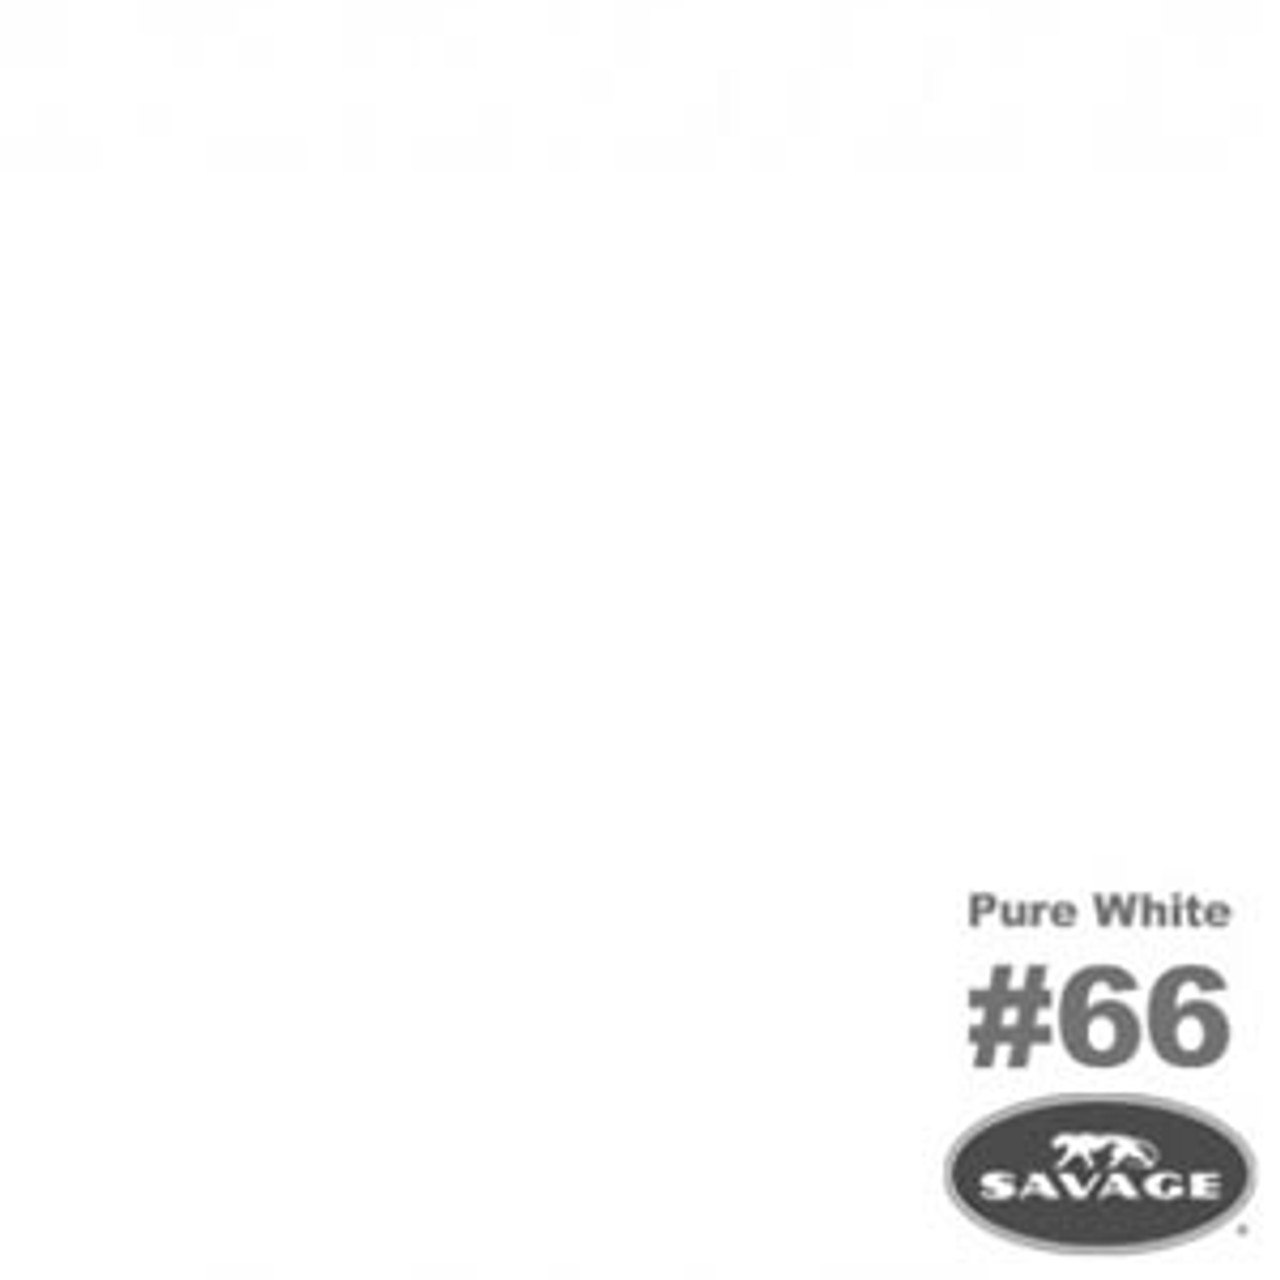 "Savage Background Paper 107"" x 12 yards Pure White"